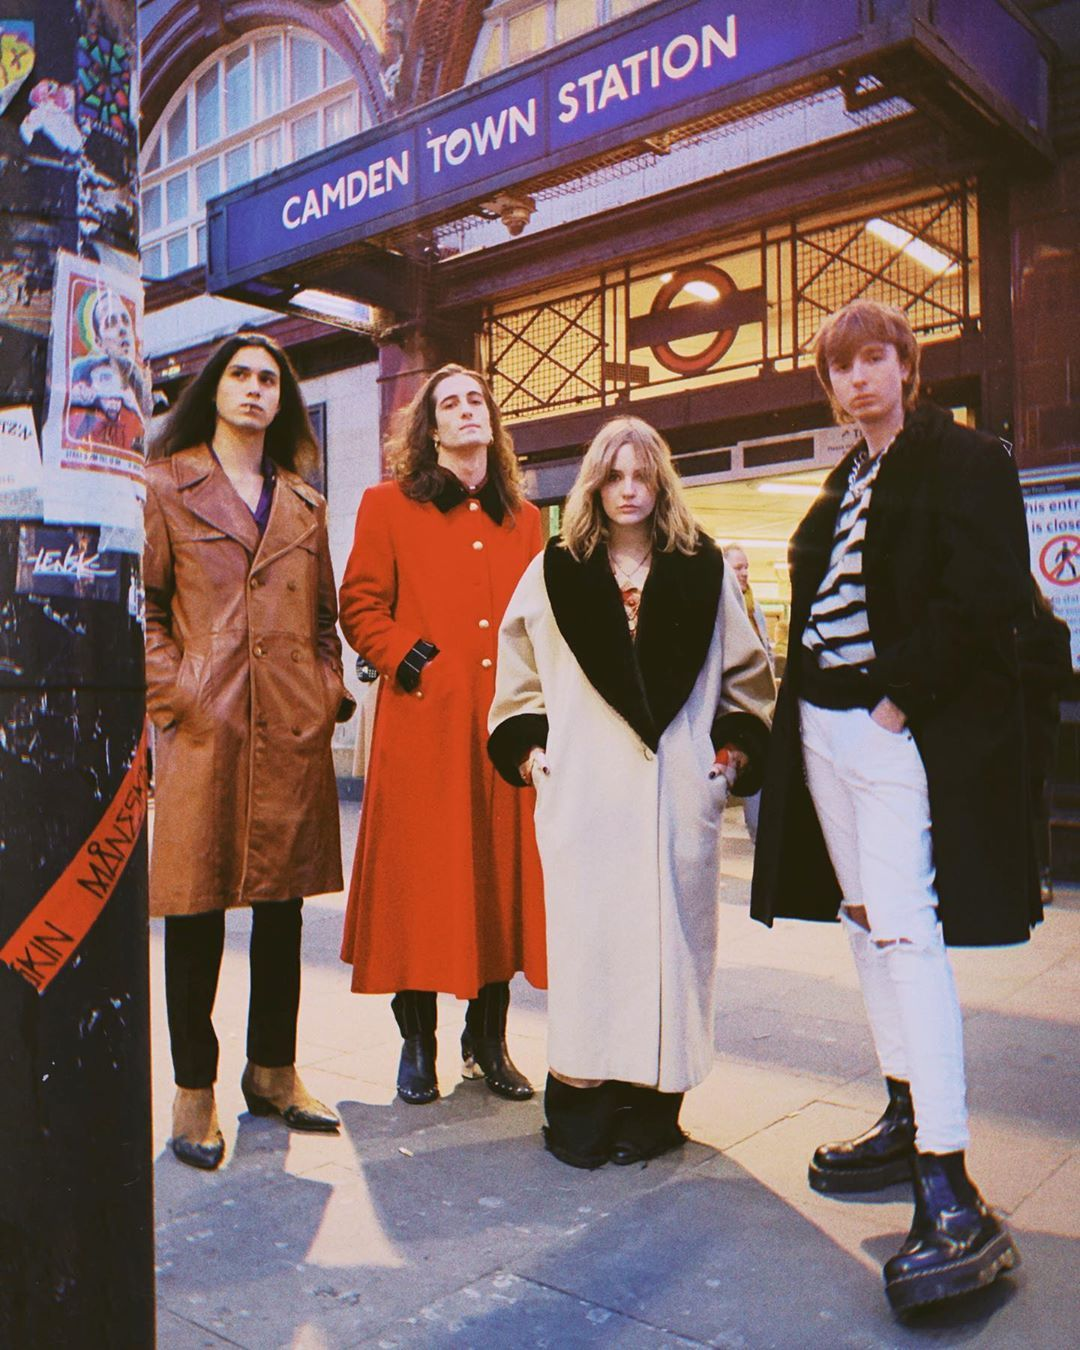 Maneskin On Instagram London Music Walk Of Fame One Day Our Name Will Be There